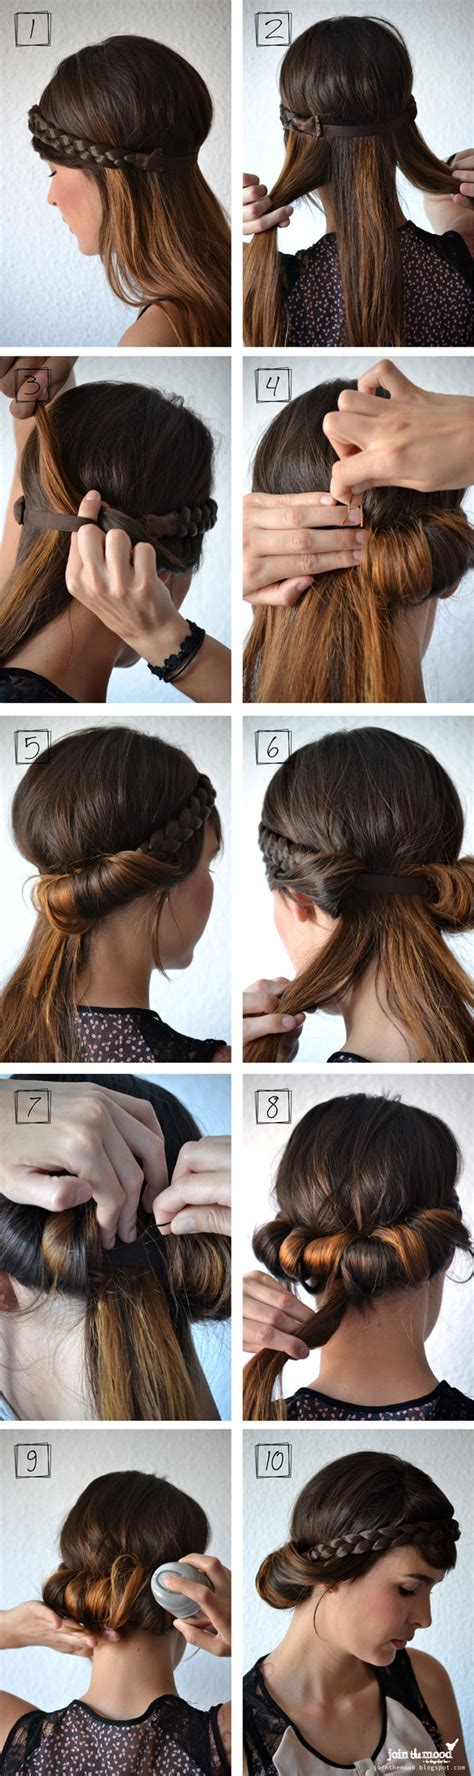 diy hairstyles with headband 10 fabulous diy hairstyles with hair accessories pretty